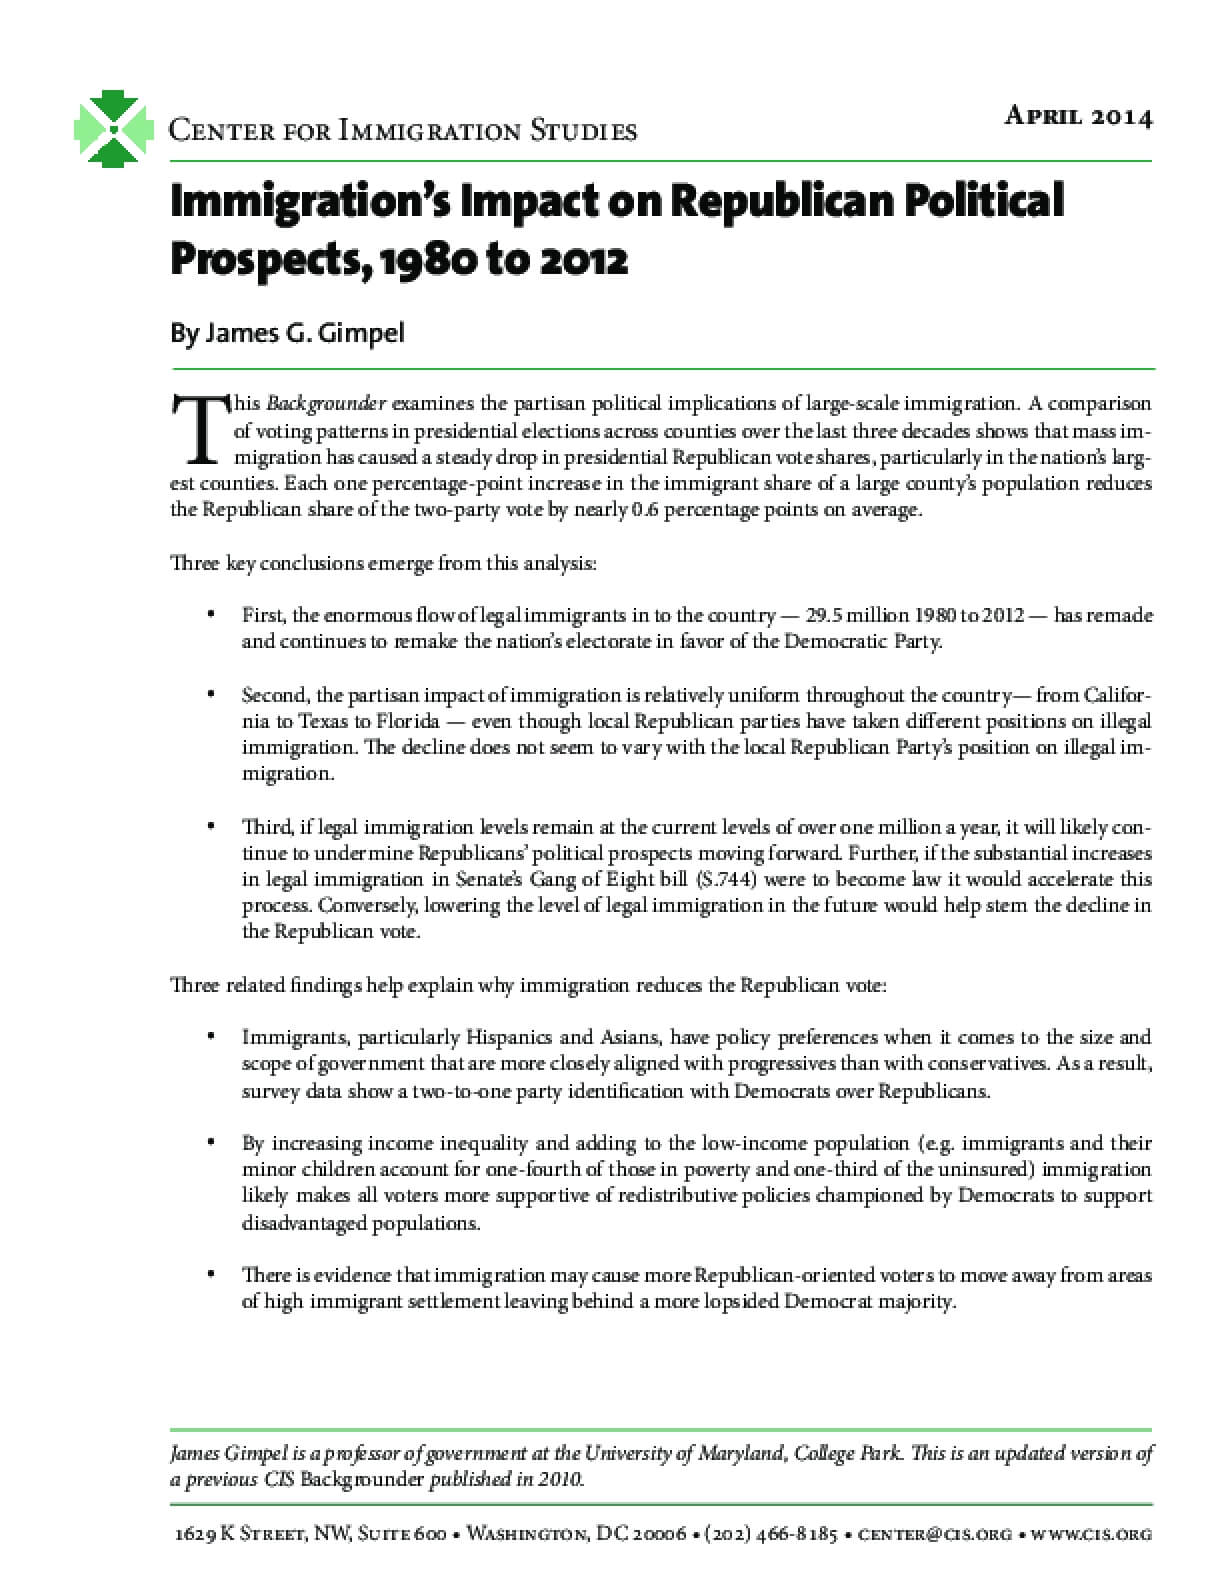 Immigration's Impact on Republican Political Prospects, 1980 to 2012